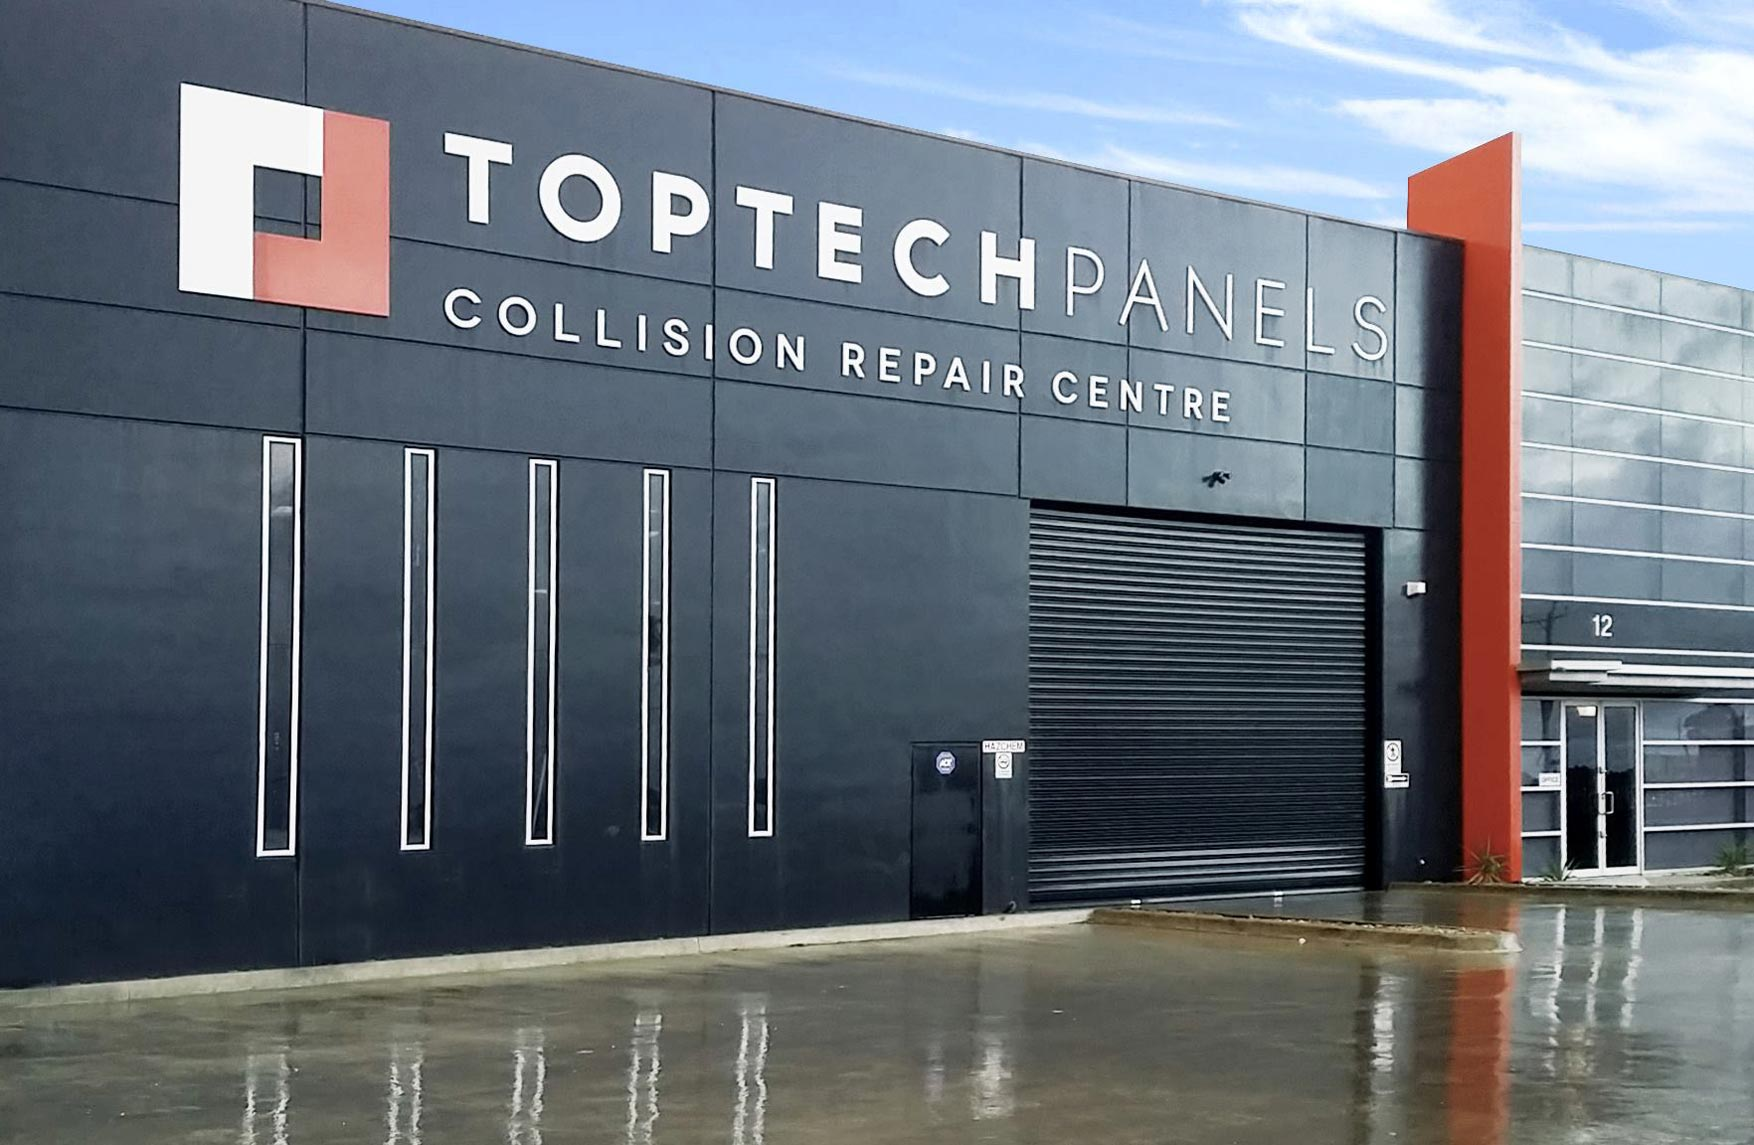 port-toptech-sign-1